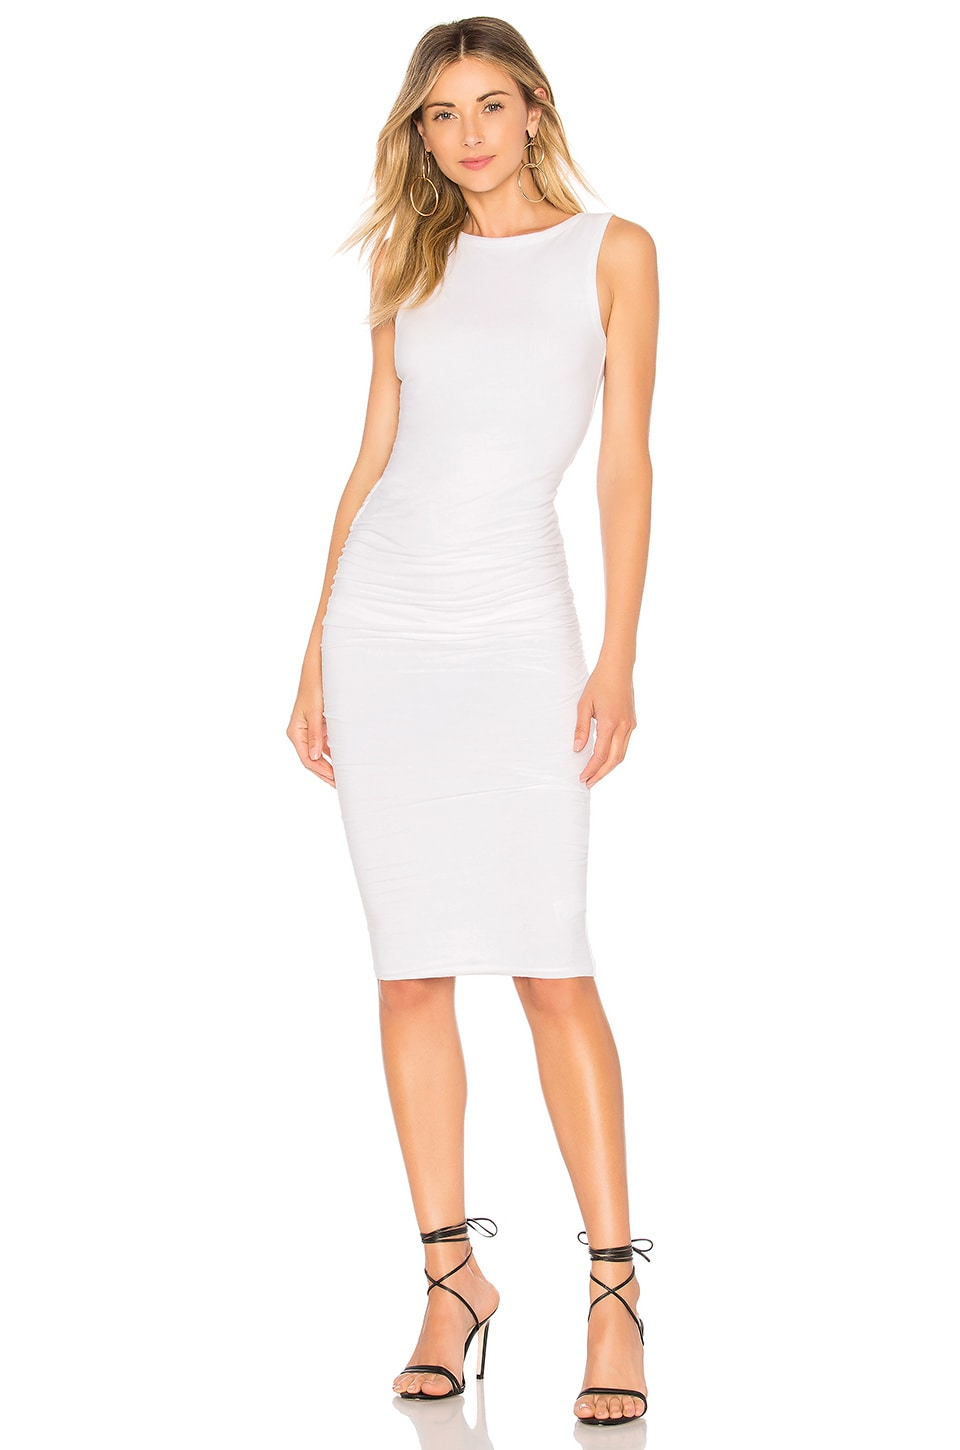 Open Back Skinny Dress in White. - size 1 (XS/S) (also in 2 (S/M)) James Perse ctliVaL